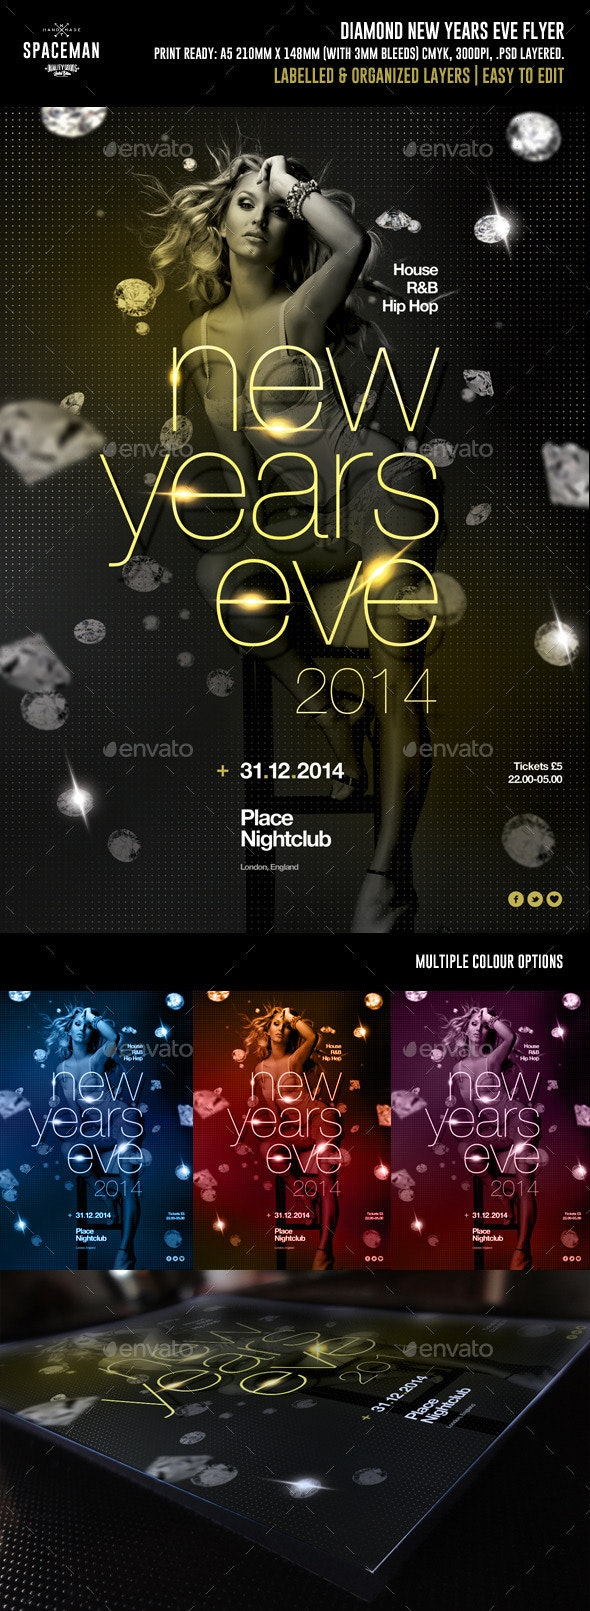 Diamond New Years Eve Flyer - Clubs & Parties Events